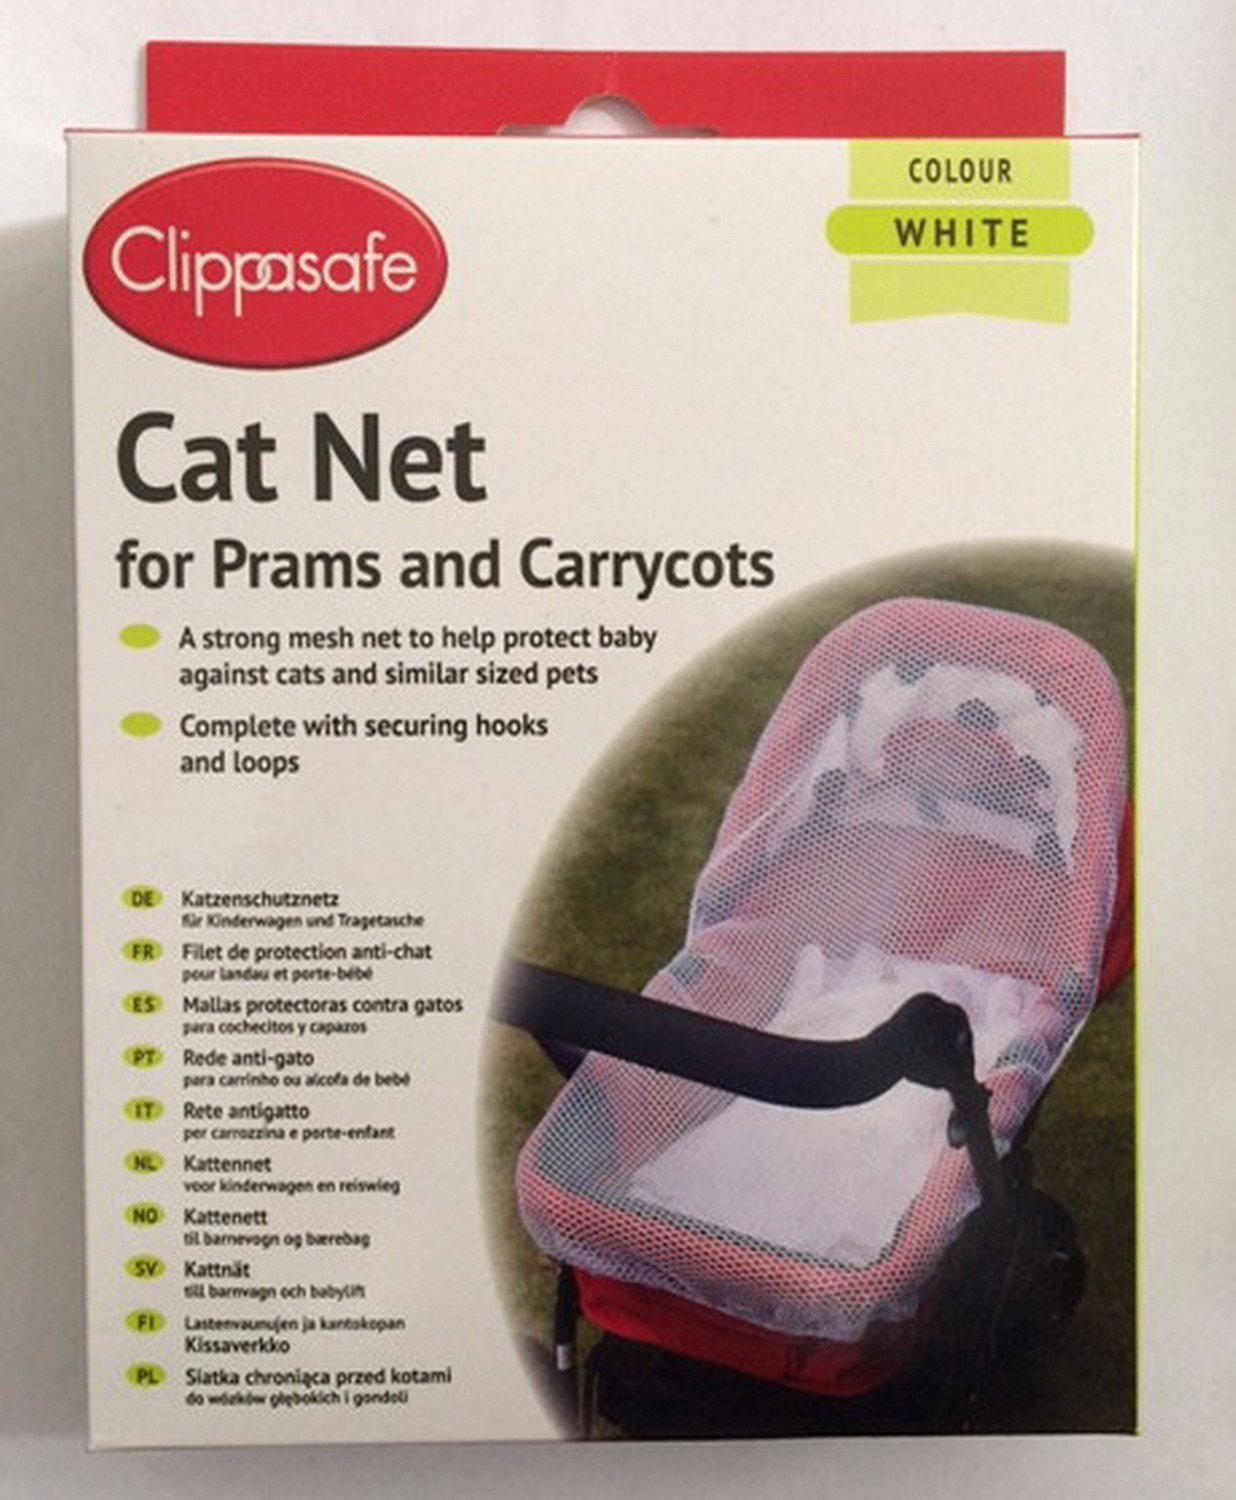 Cat Net Baby Protection Pram Carrycot Mesh Pushchair Safety Net Clippasafe